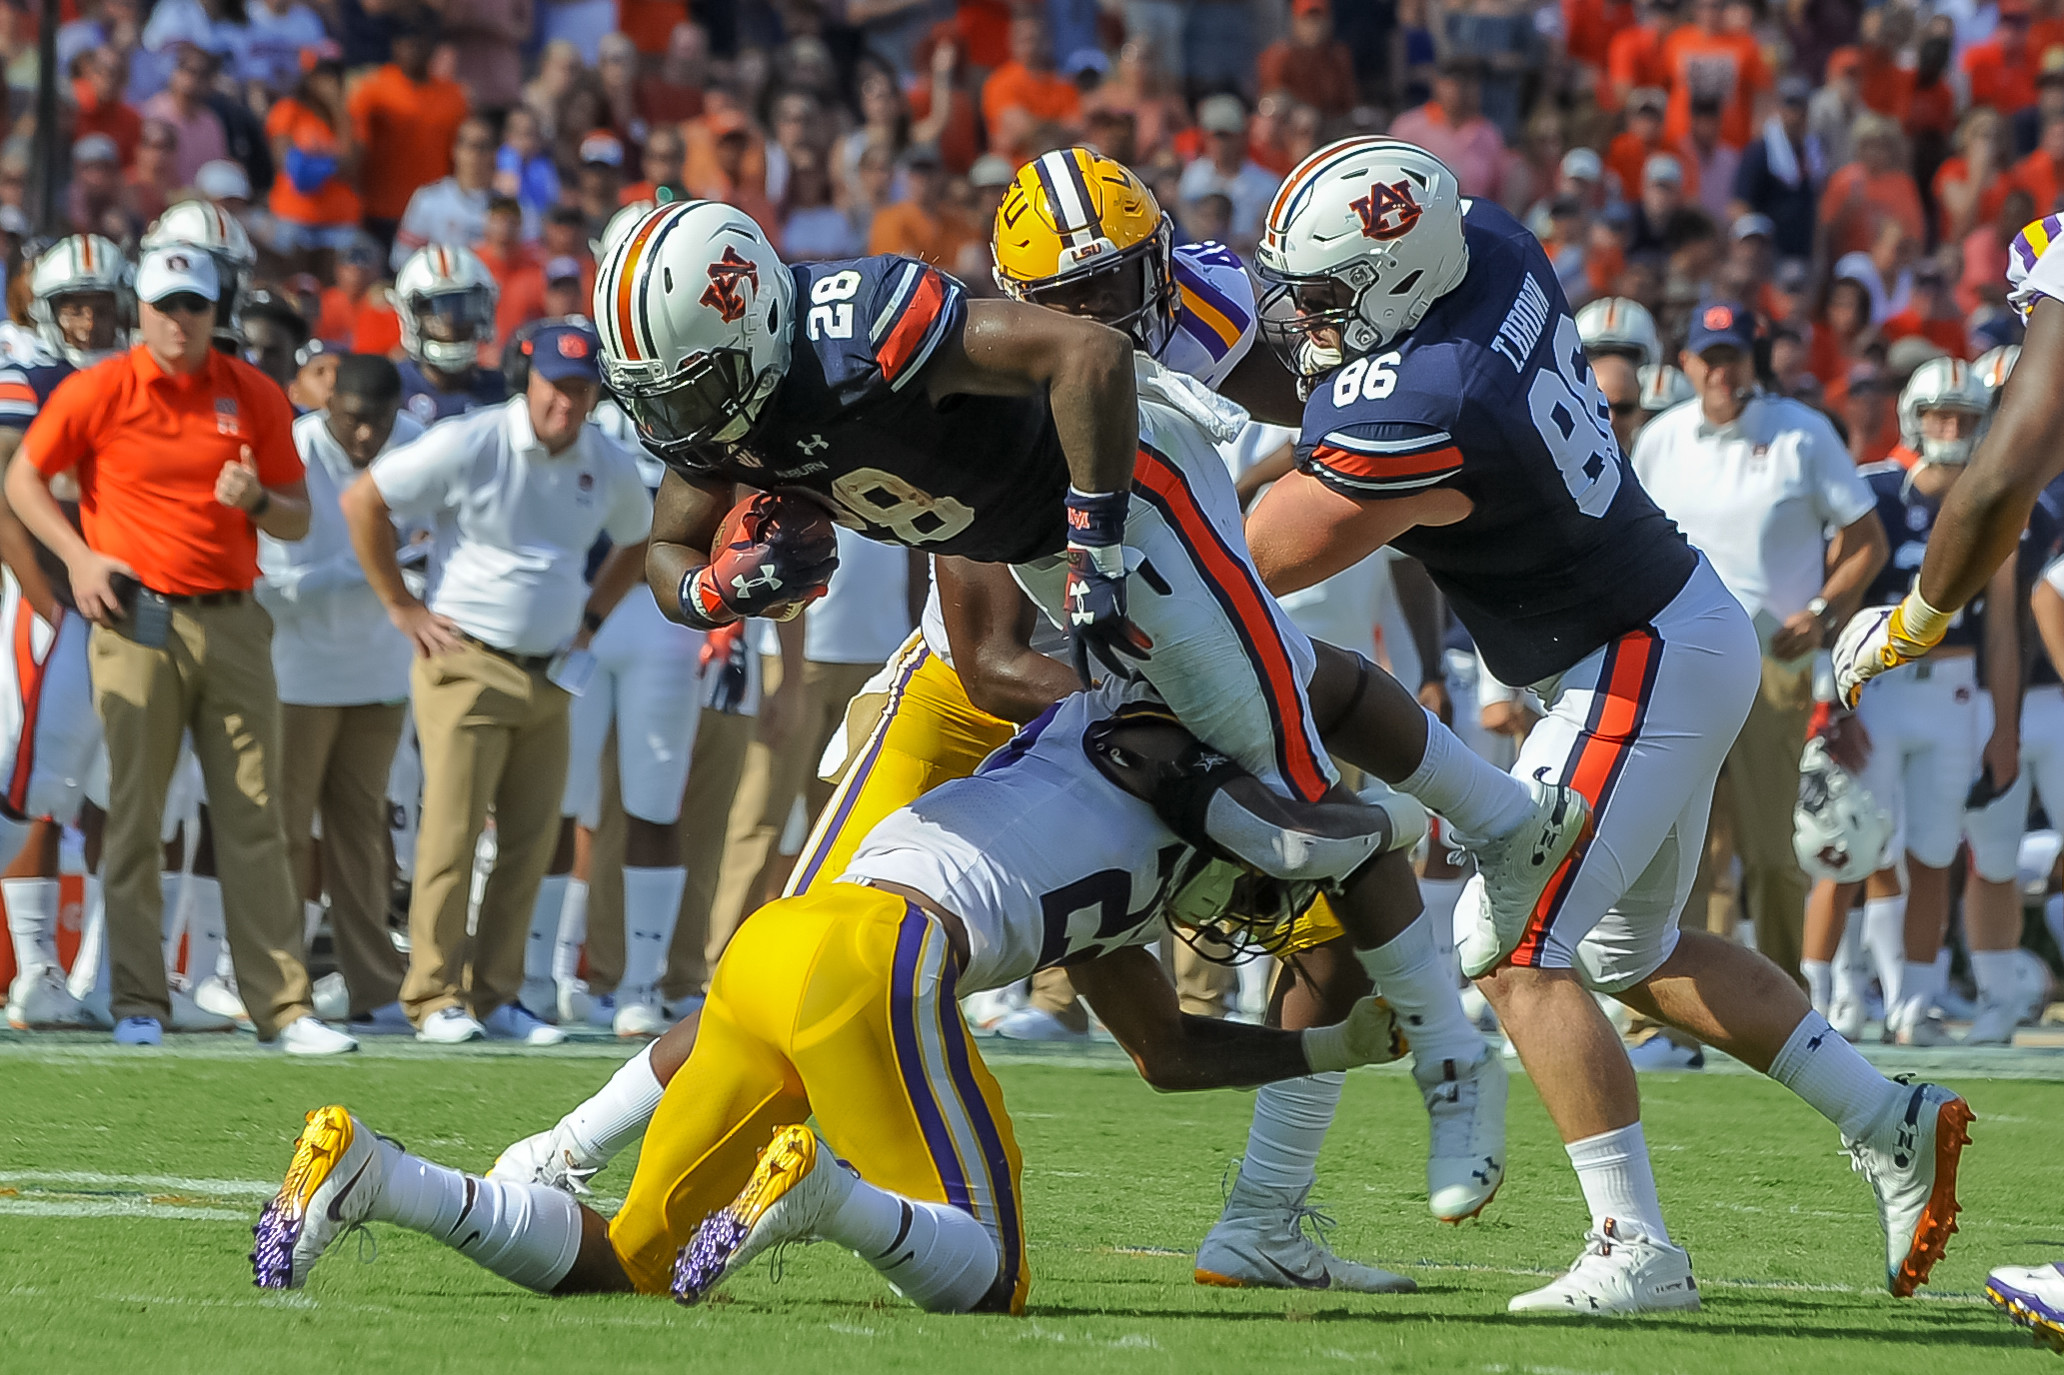 Auburn Tigers running back JaTarvious Whitlow (28) is upended by LSU Tigers cornerback Kristian Fulton (22) during the first half of Saturday's game, at Jordan Hare Stadium in Auburn. (Contributed by Jeff Johnsey)